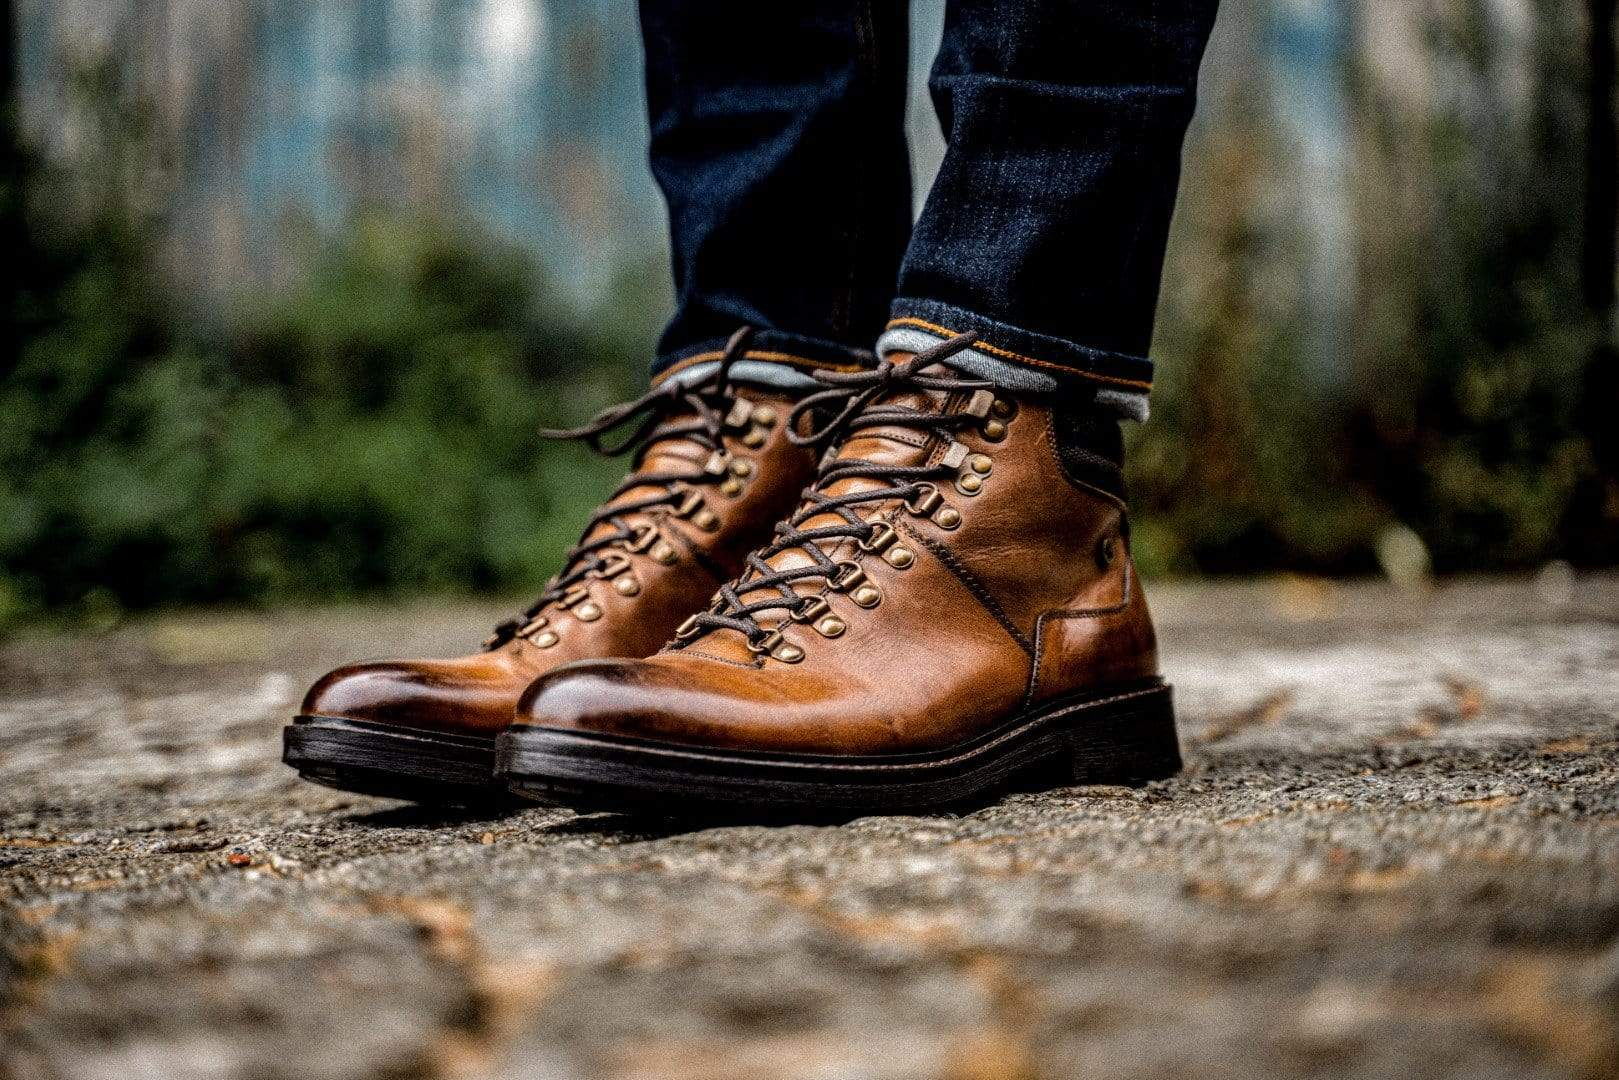 Goodwin Smith Footwear AW19 Tremont Tan Hiker Inspired Leather Boot